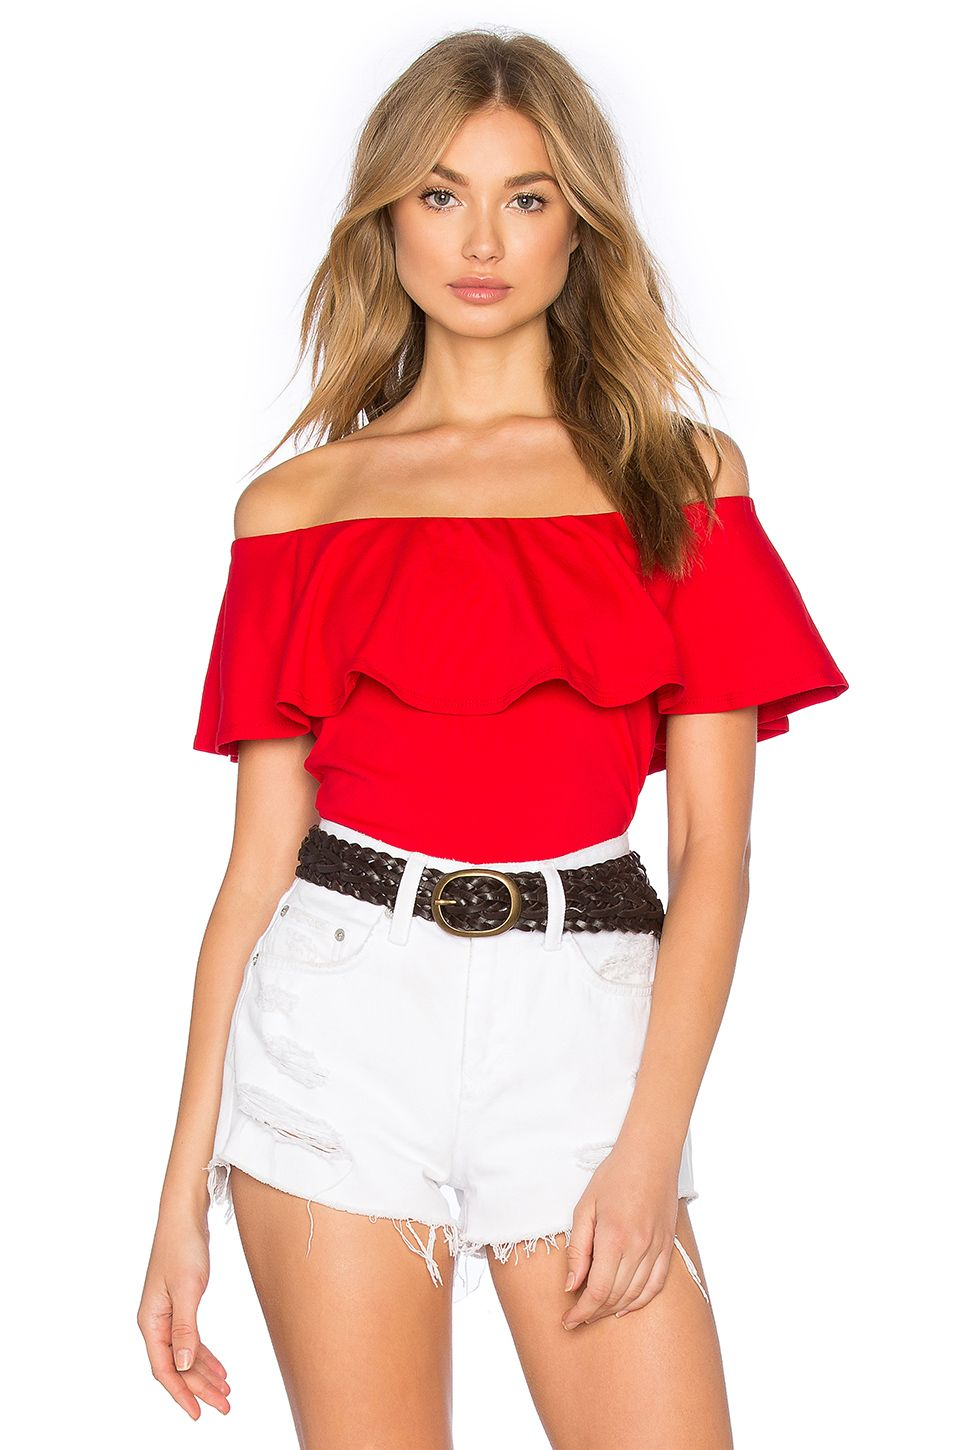 7d5e5e381d SUSANA MONACO SUSANA MONACO RUFFLE OFF SHOULDER TOP IN RED. .  susanamonaco   cloth  dress  top  shirt  pant  coat  jecket  jacket  shorts  ski